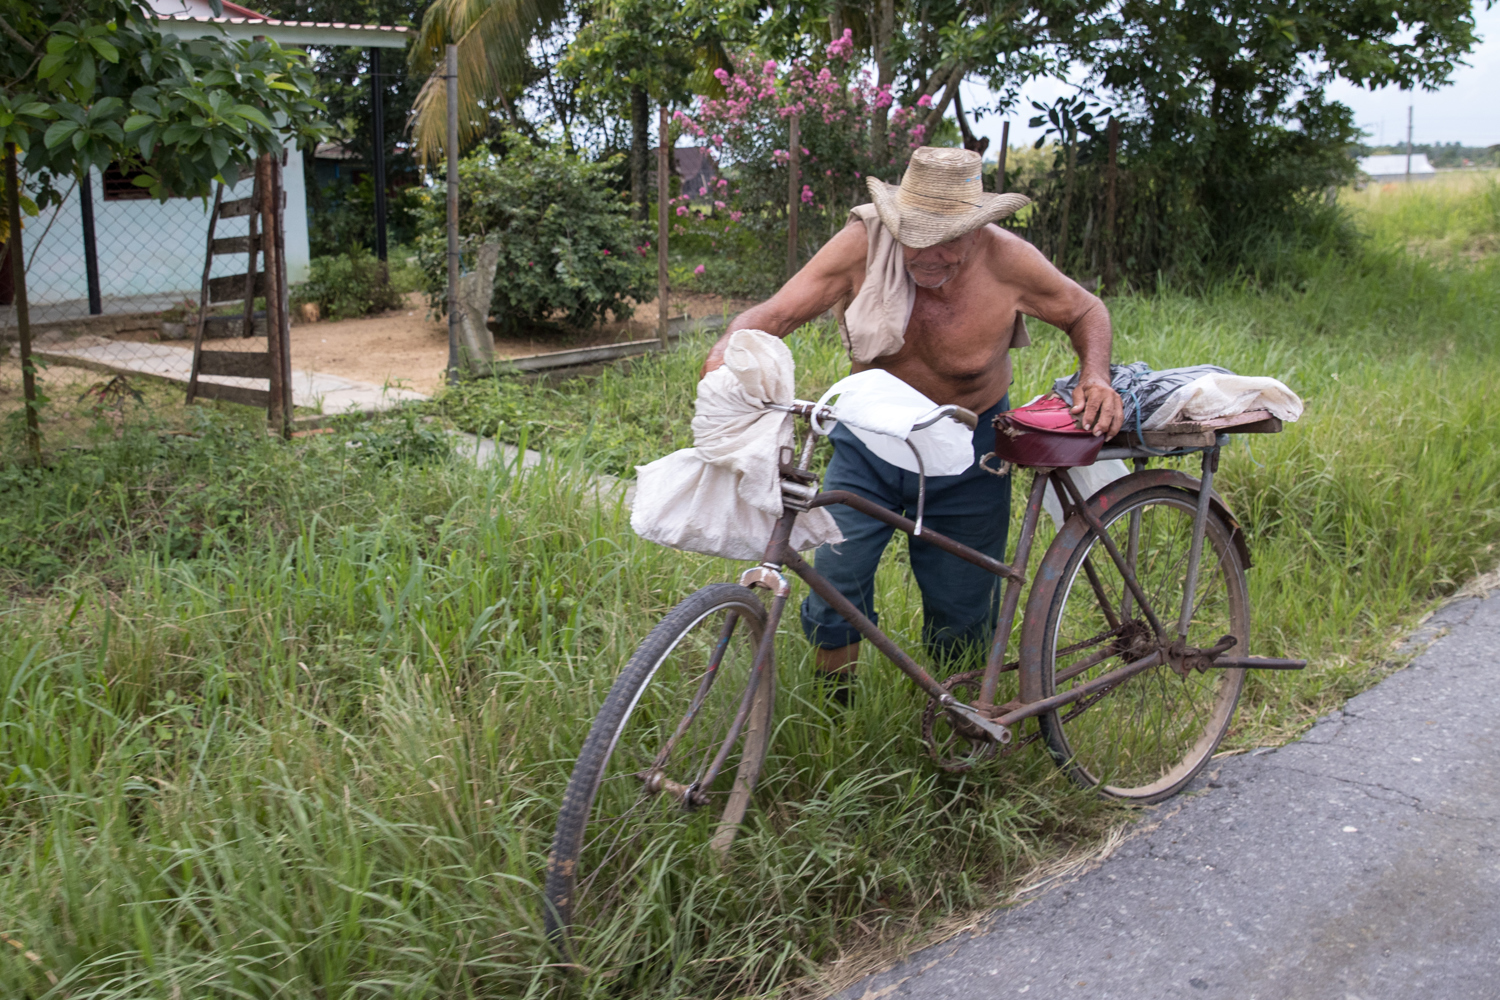 Cuban heading to a small town in the countryside. - Cuba Photography